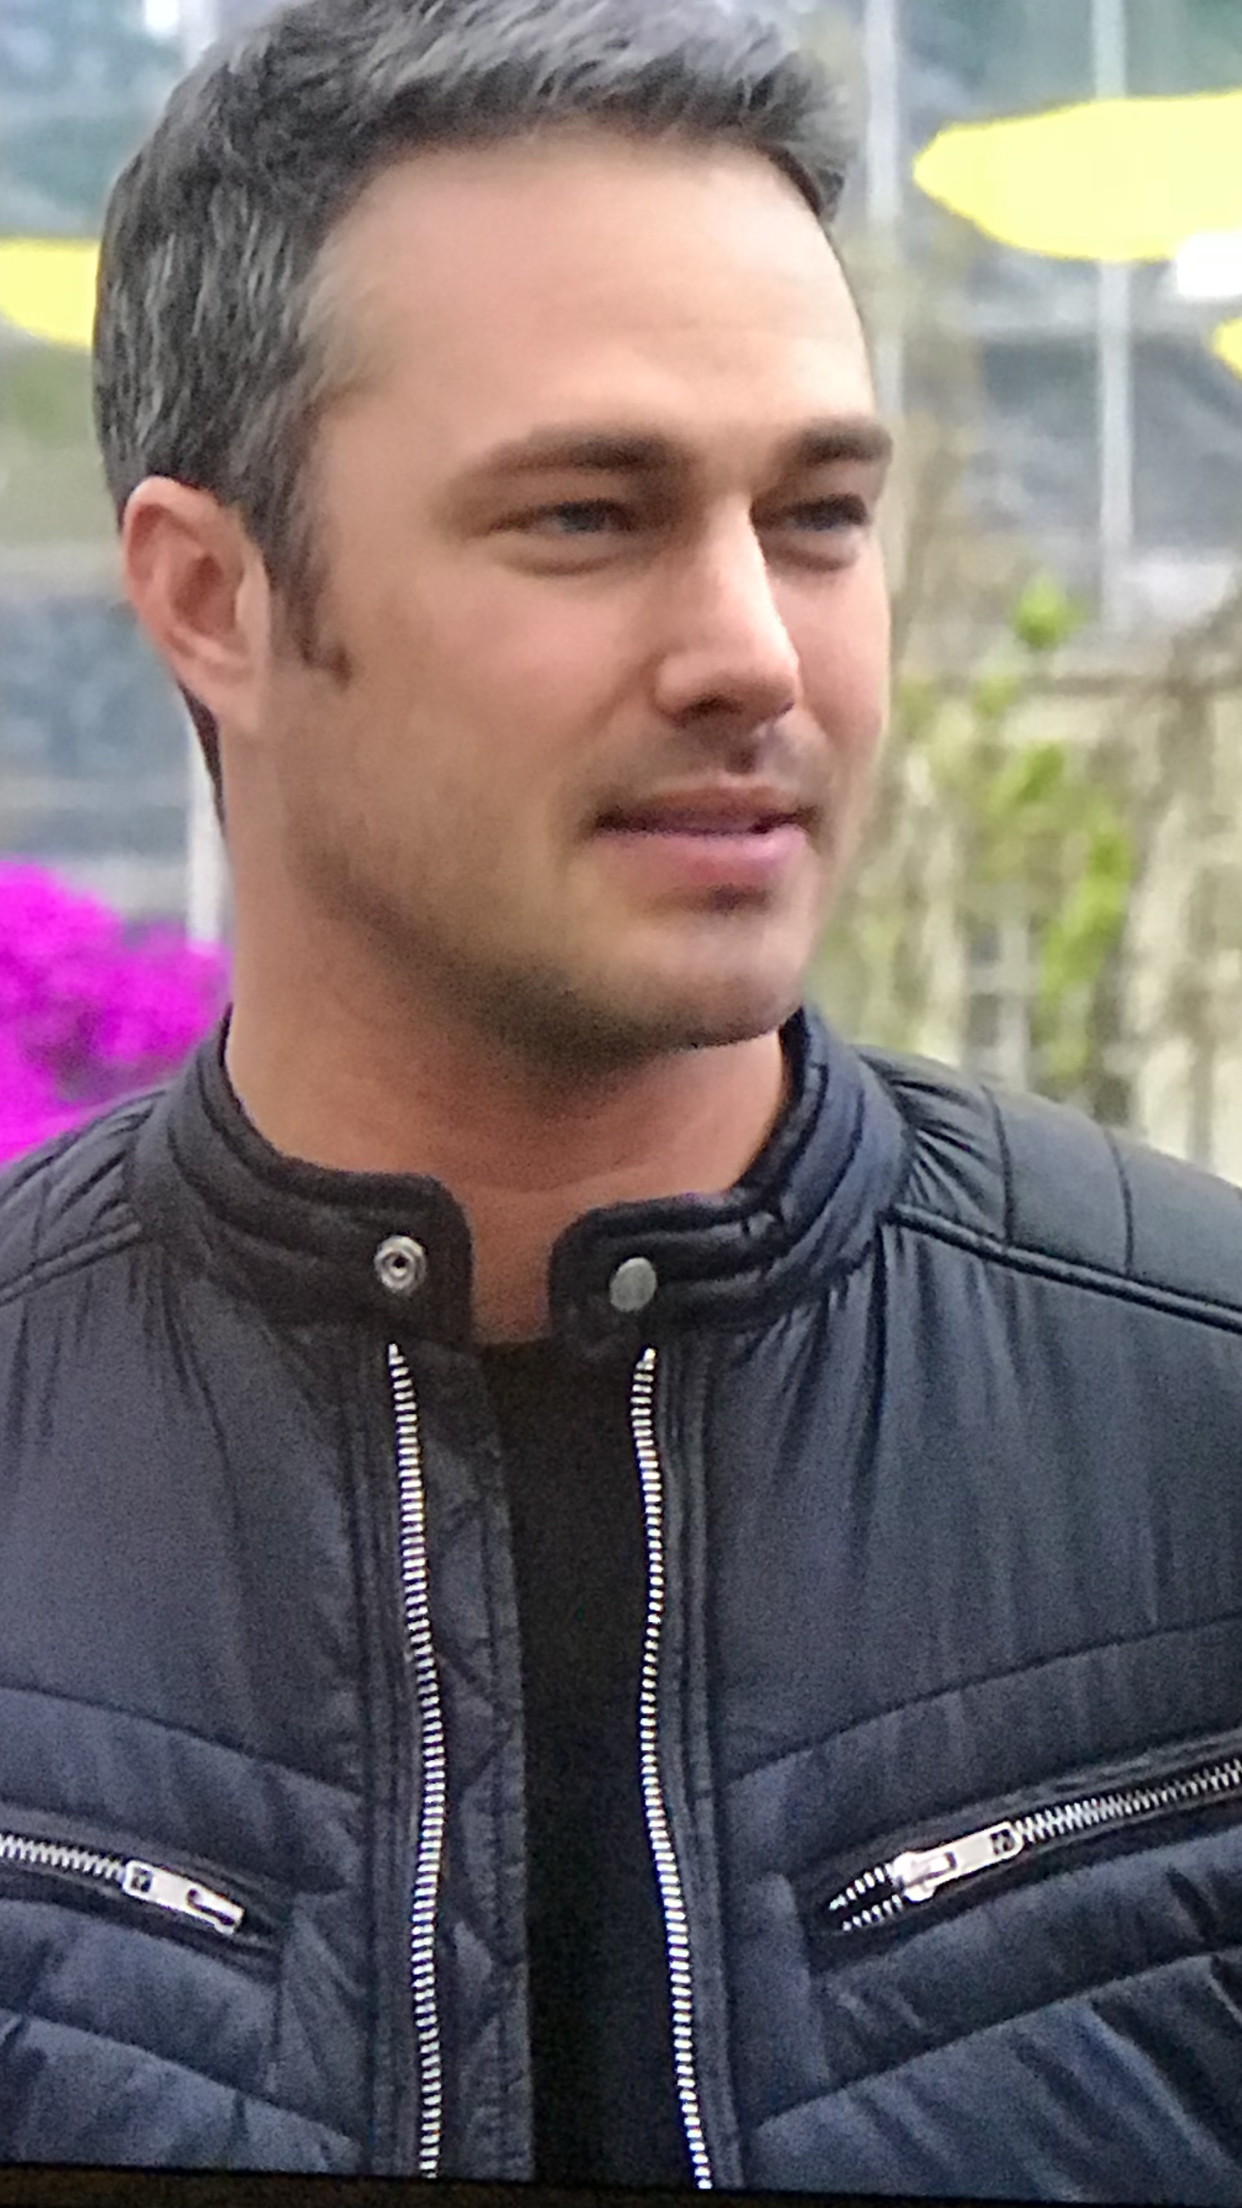 So Hot!!! | Taylor kinney chicago fire, Taylor kinney ...